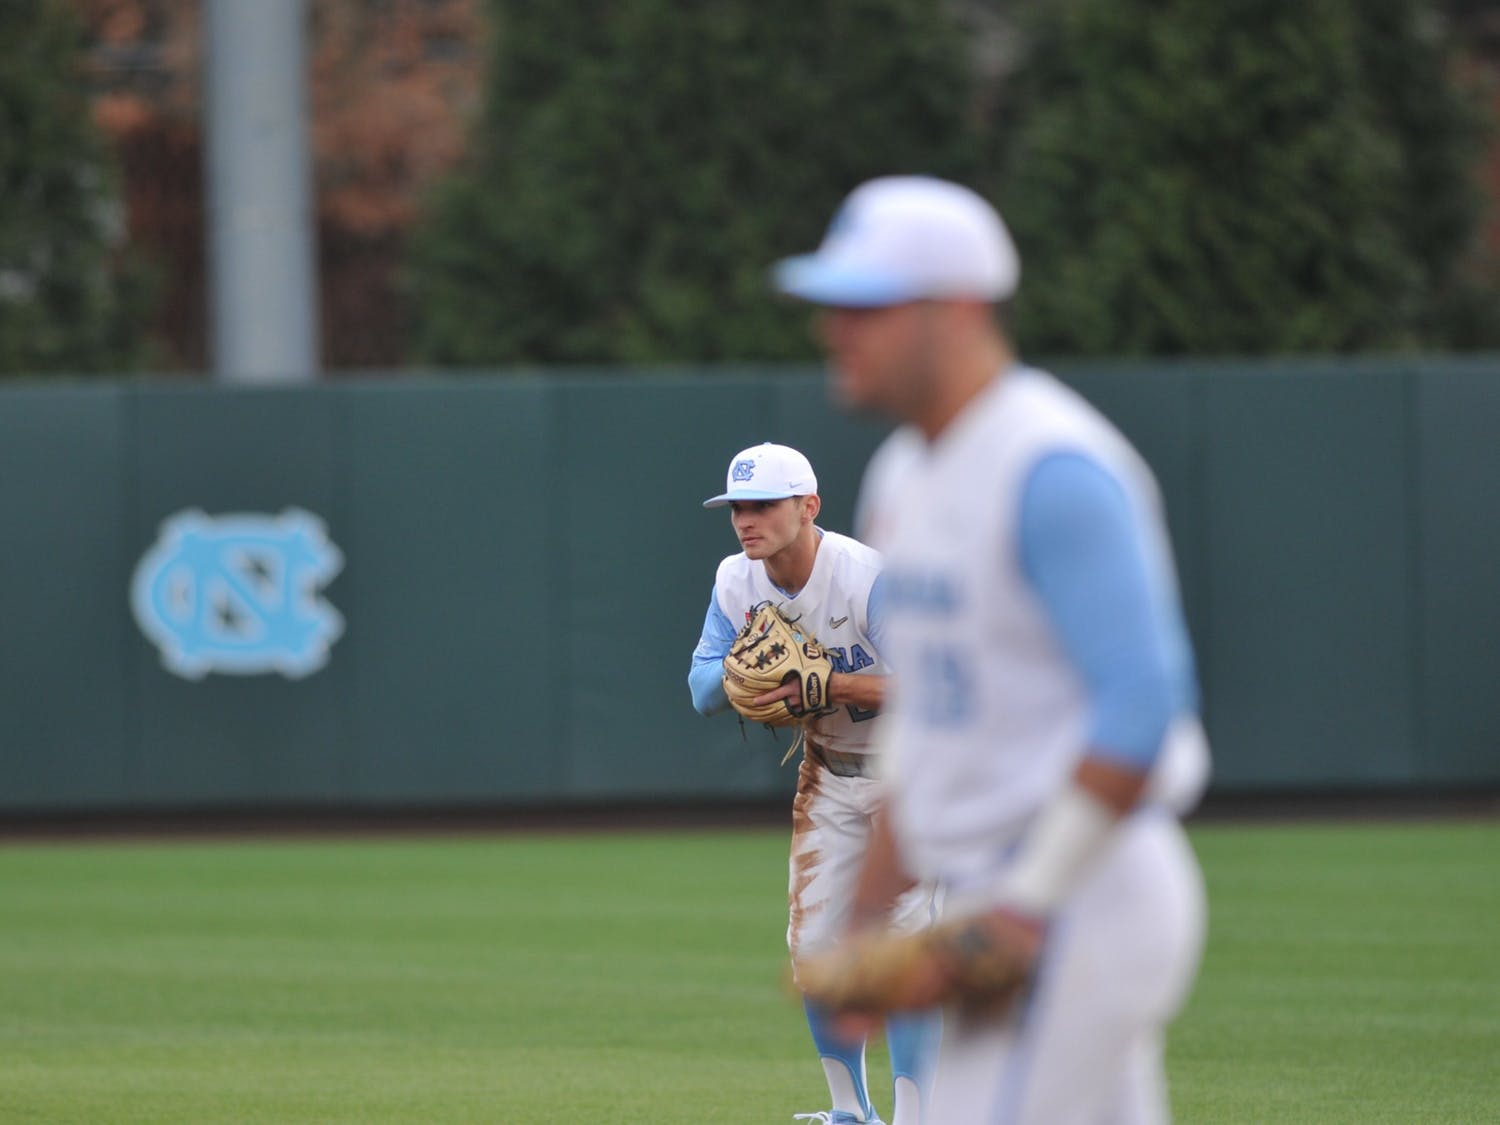 (From left) Junior Mikey Madej and Sophomore Aaron Sabato play on Tuesday, Feb. 25, 2020 in Boshamer Stadium against NC A&T. UNC beat NC A&T 8-0.